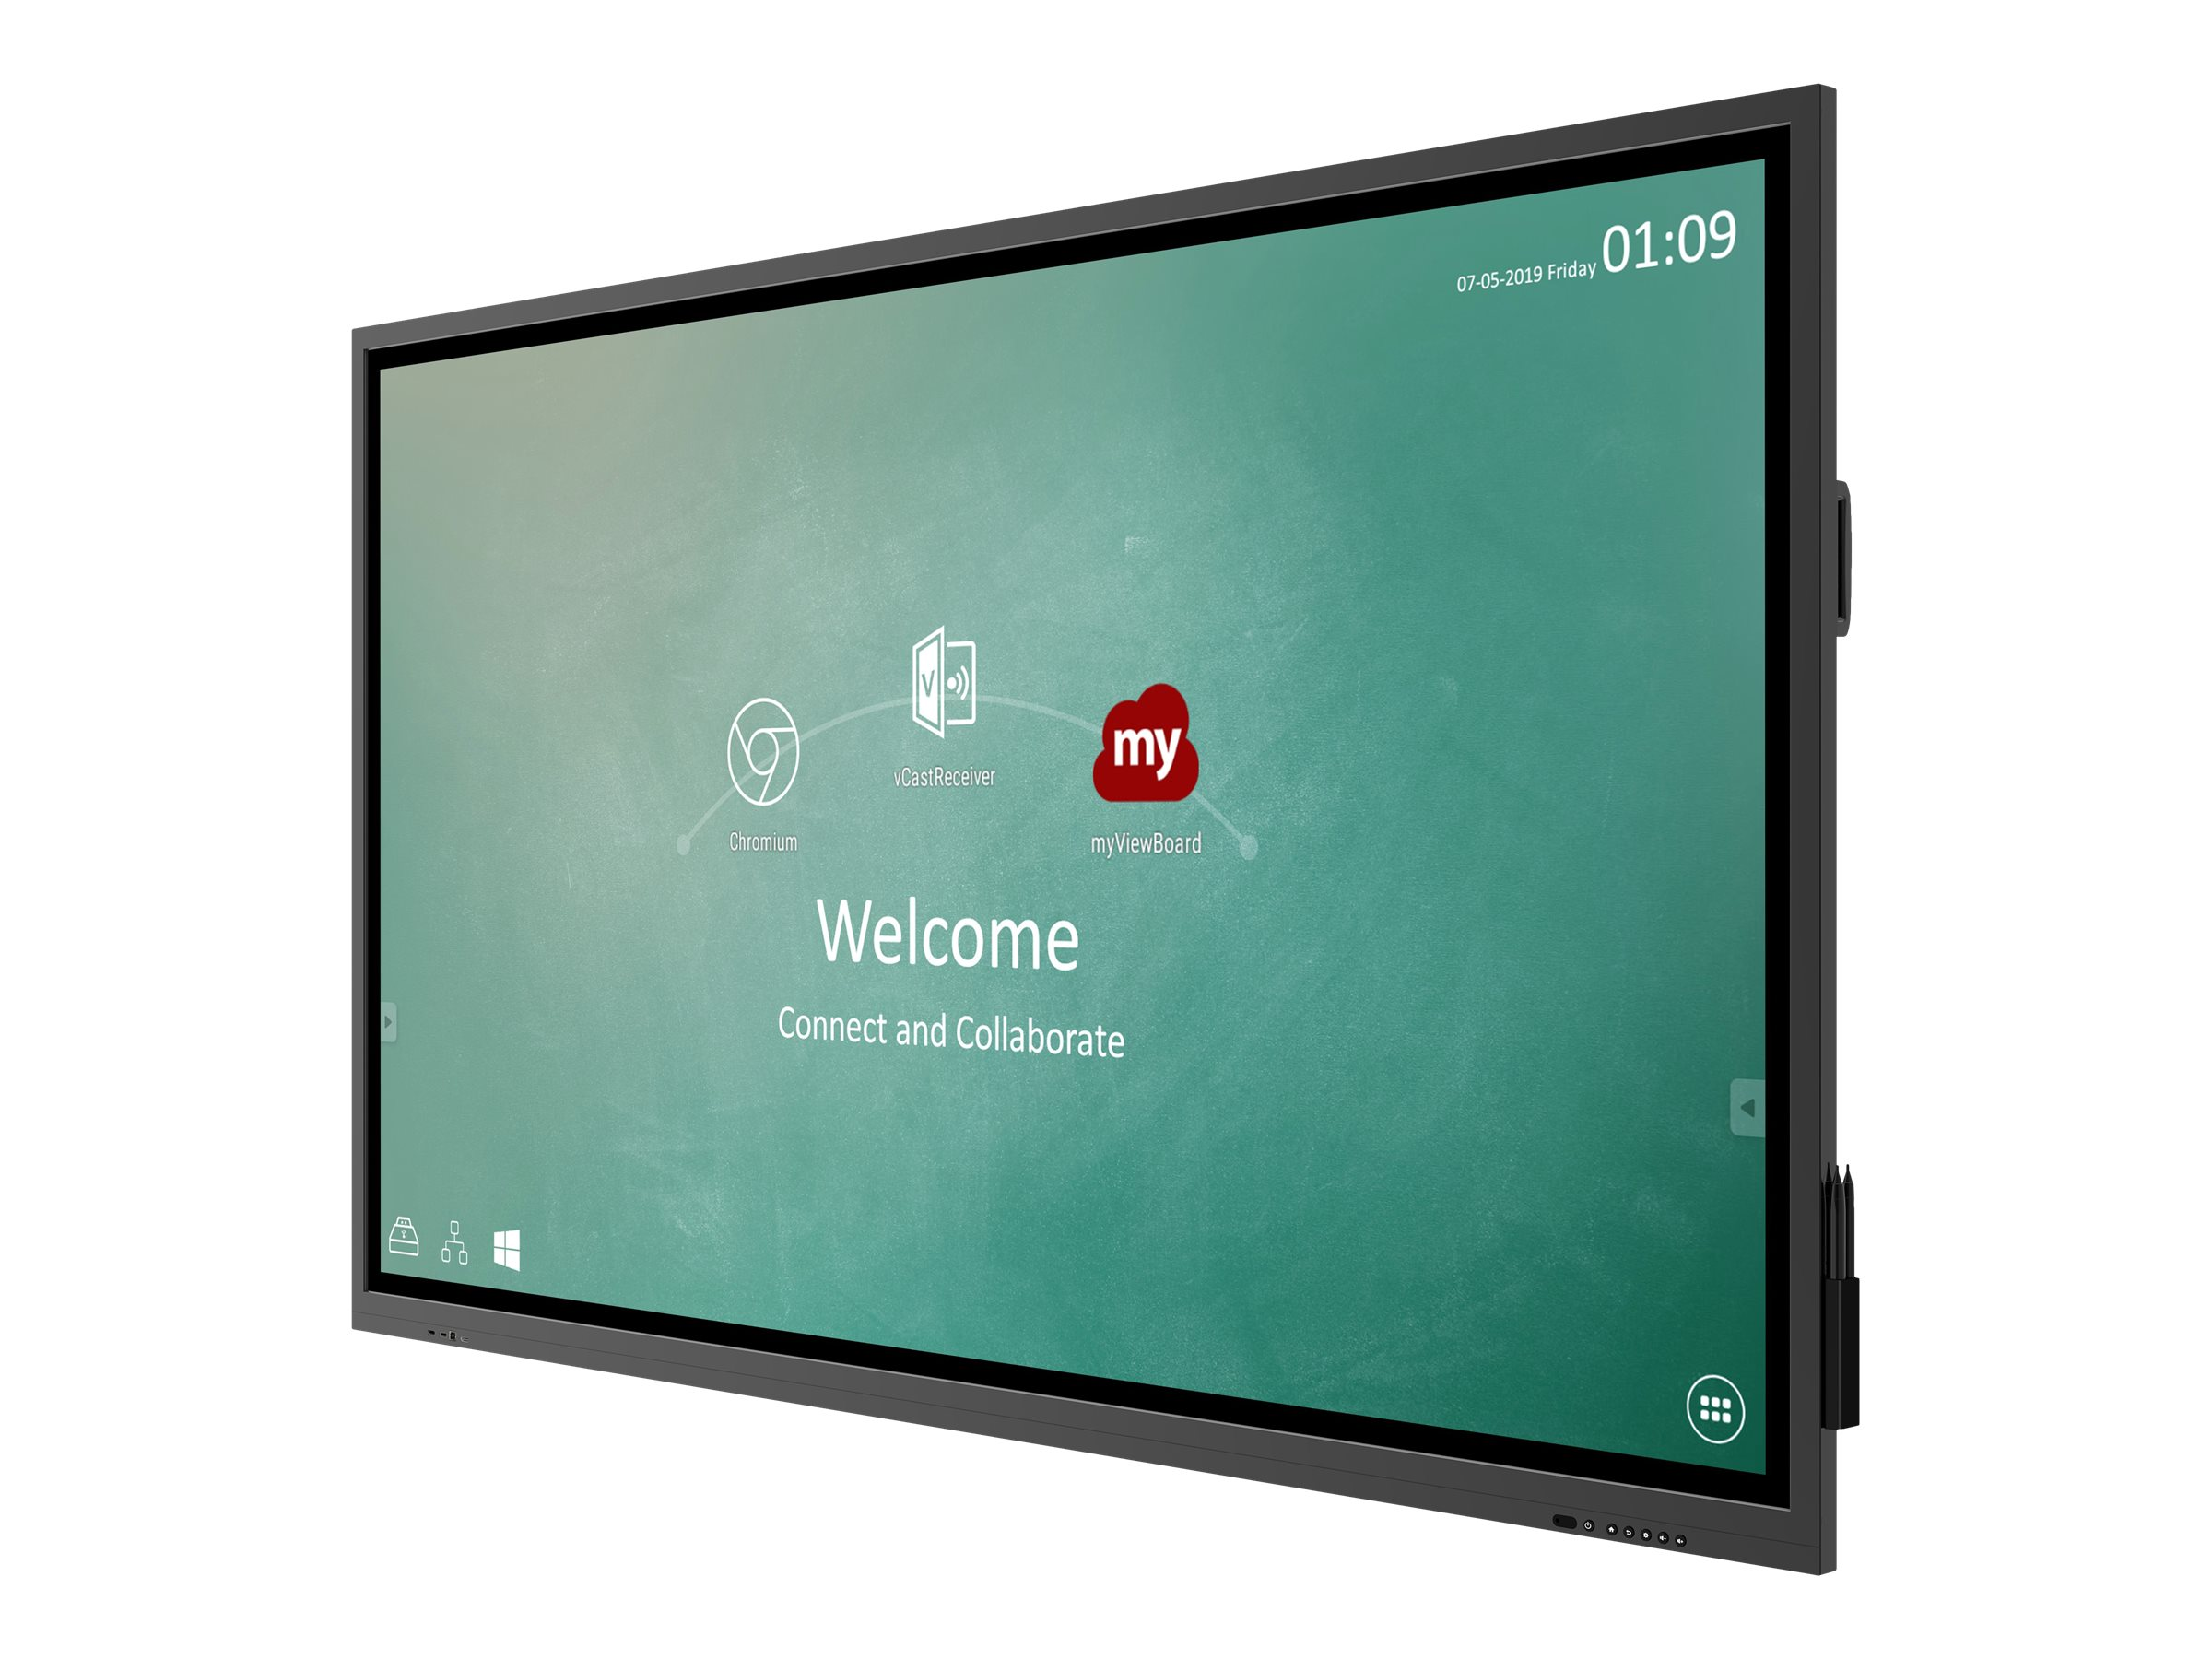 "ViewSonic ViewBoard IFP6530 - 165.1 cm (65"") Klasse IFP30 Series LED-Display - interaktive Digital Signage - mit optiona"